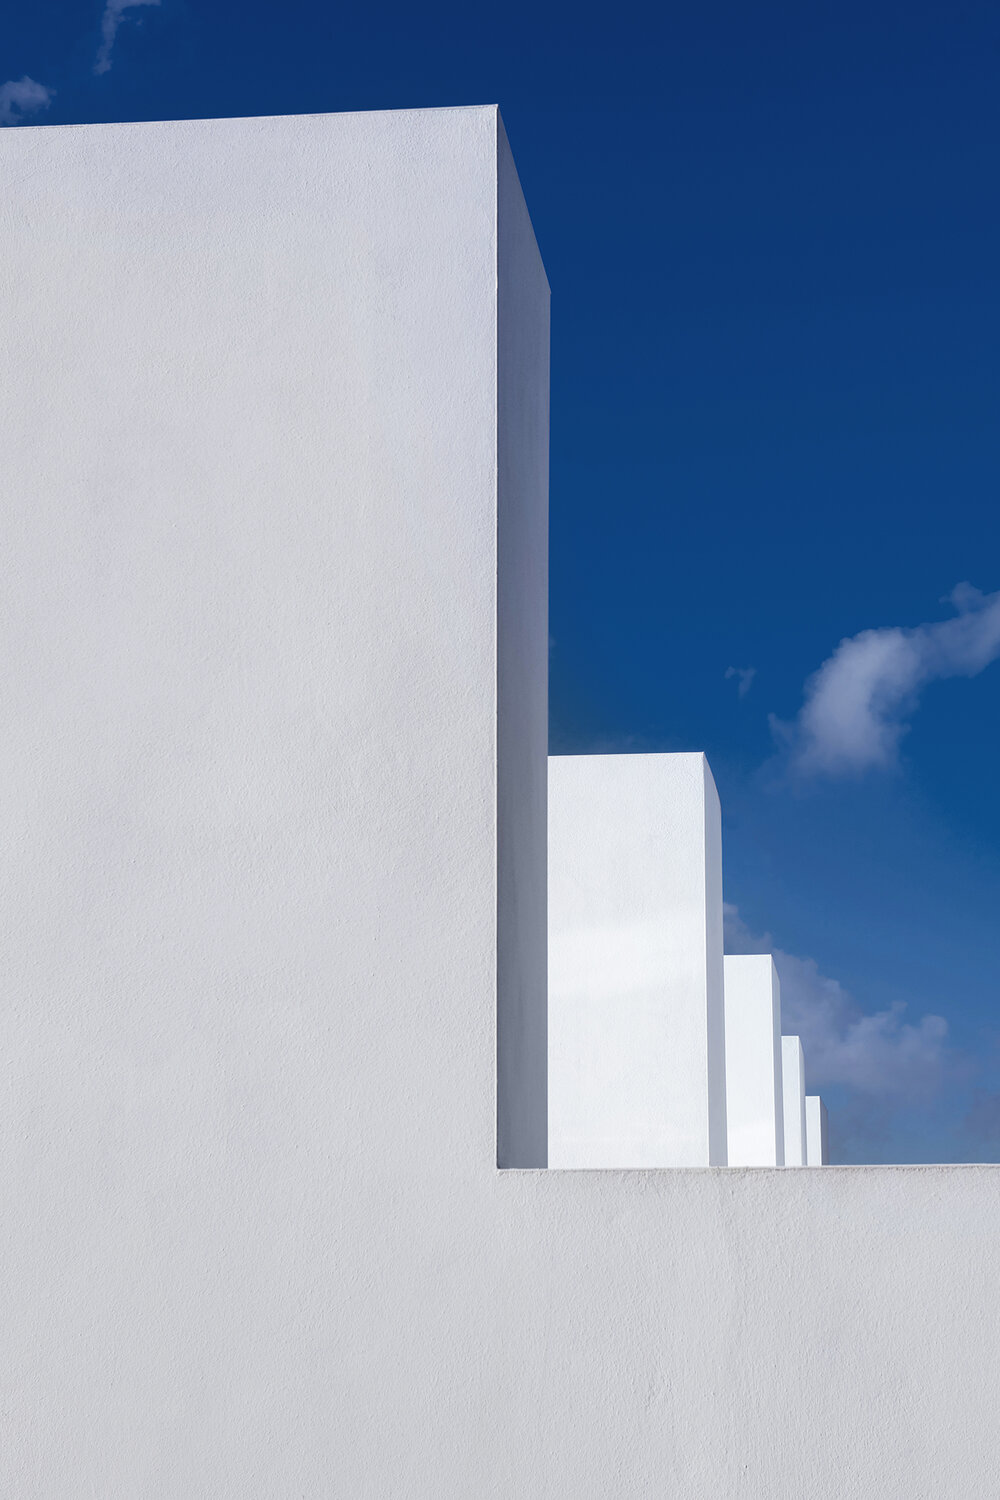 Chimney_detail_Casa_Flores_architecture_Puerto_rico_fuster_architects_house+Photo+by+Jaime+Navarro (1)